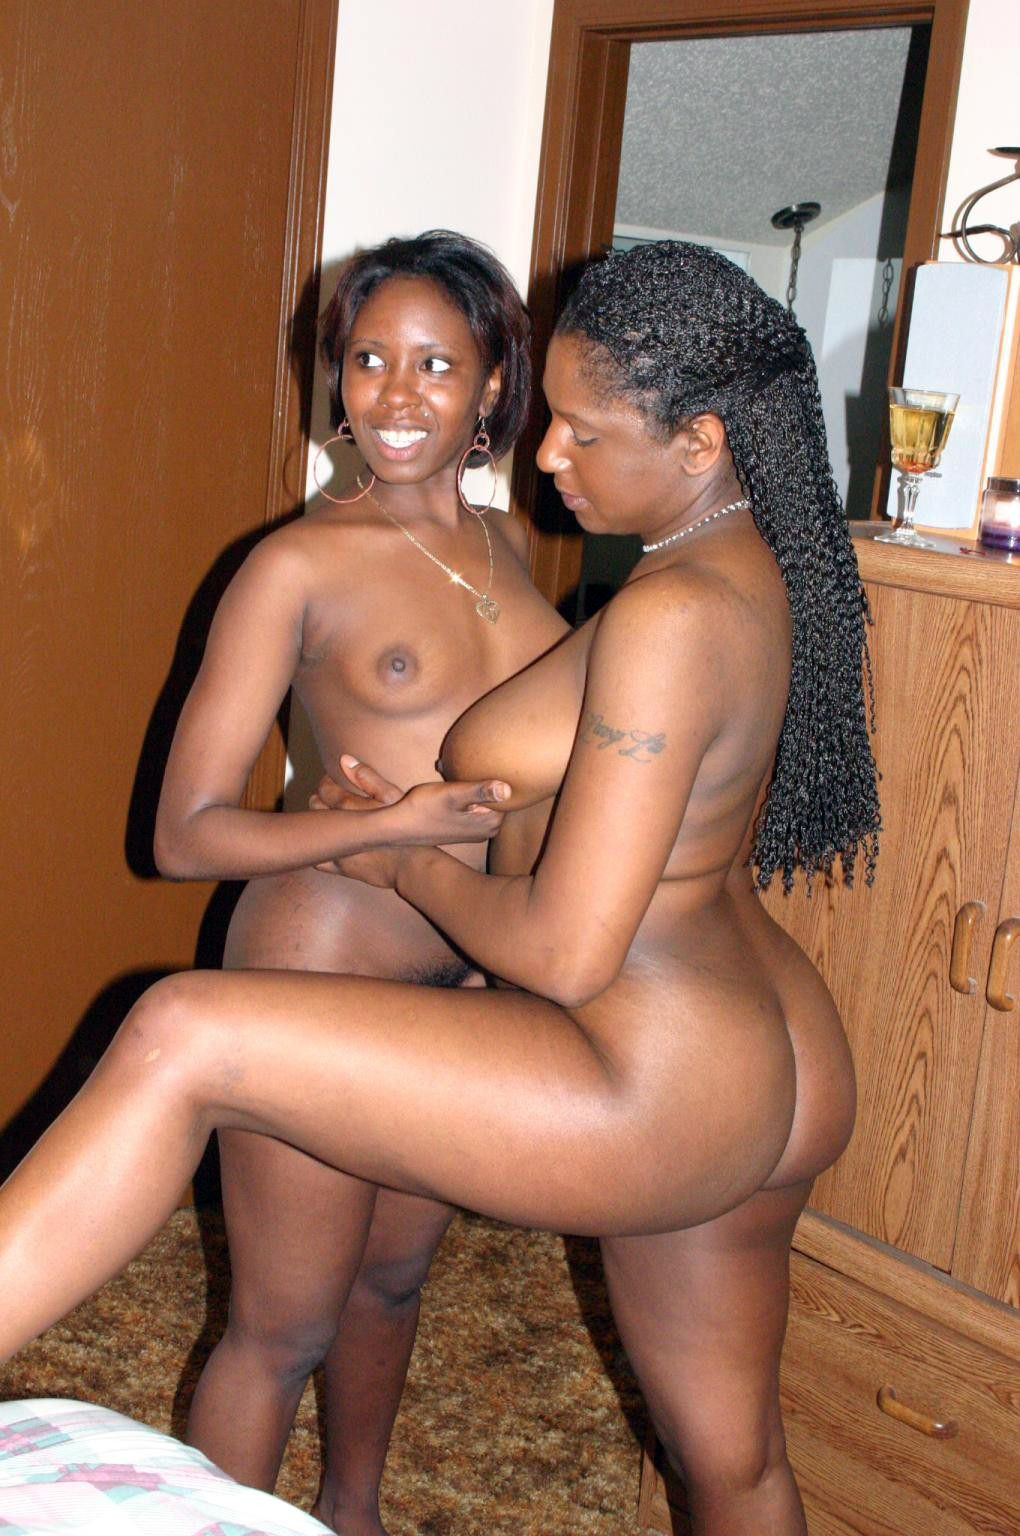 Have faced Ebony milfs at home idea can